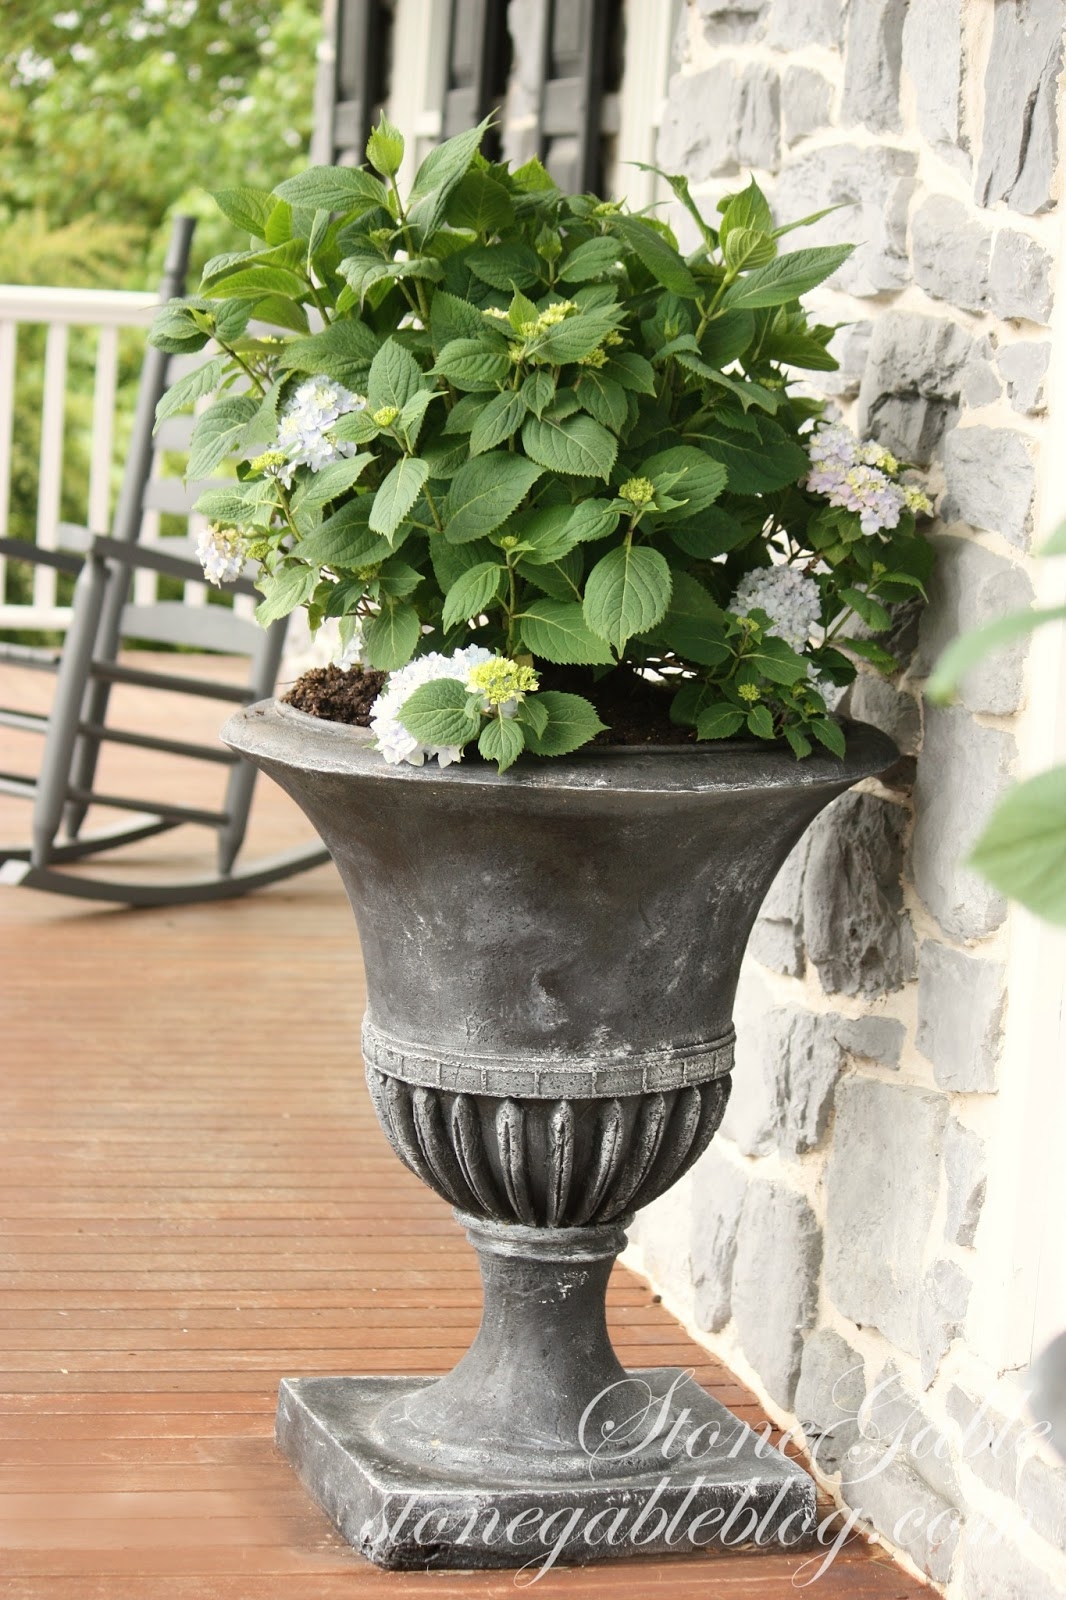 Summer porch planting stonegable this weekend i planted endless bloom hydrangeas in my newly painted urns look for an upcoming post about painting a pot to look aged rubansaba